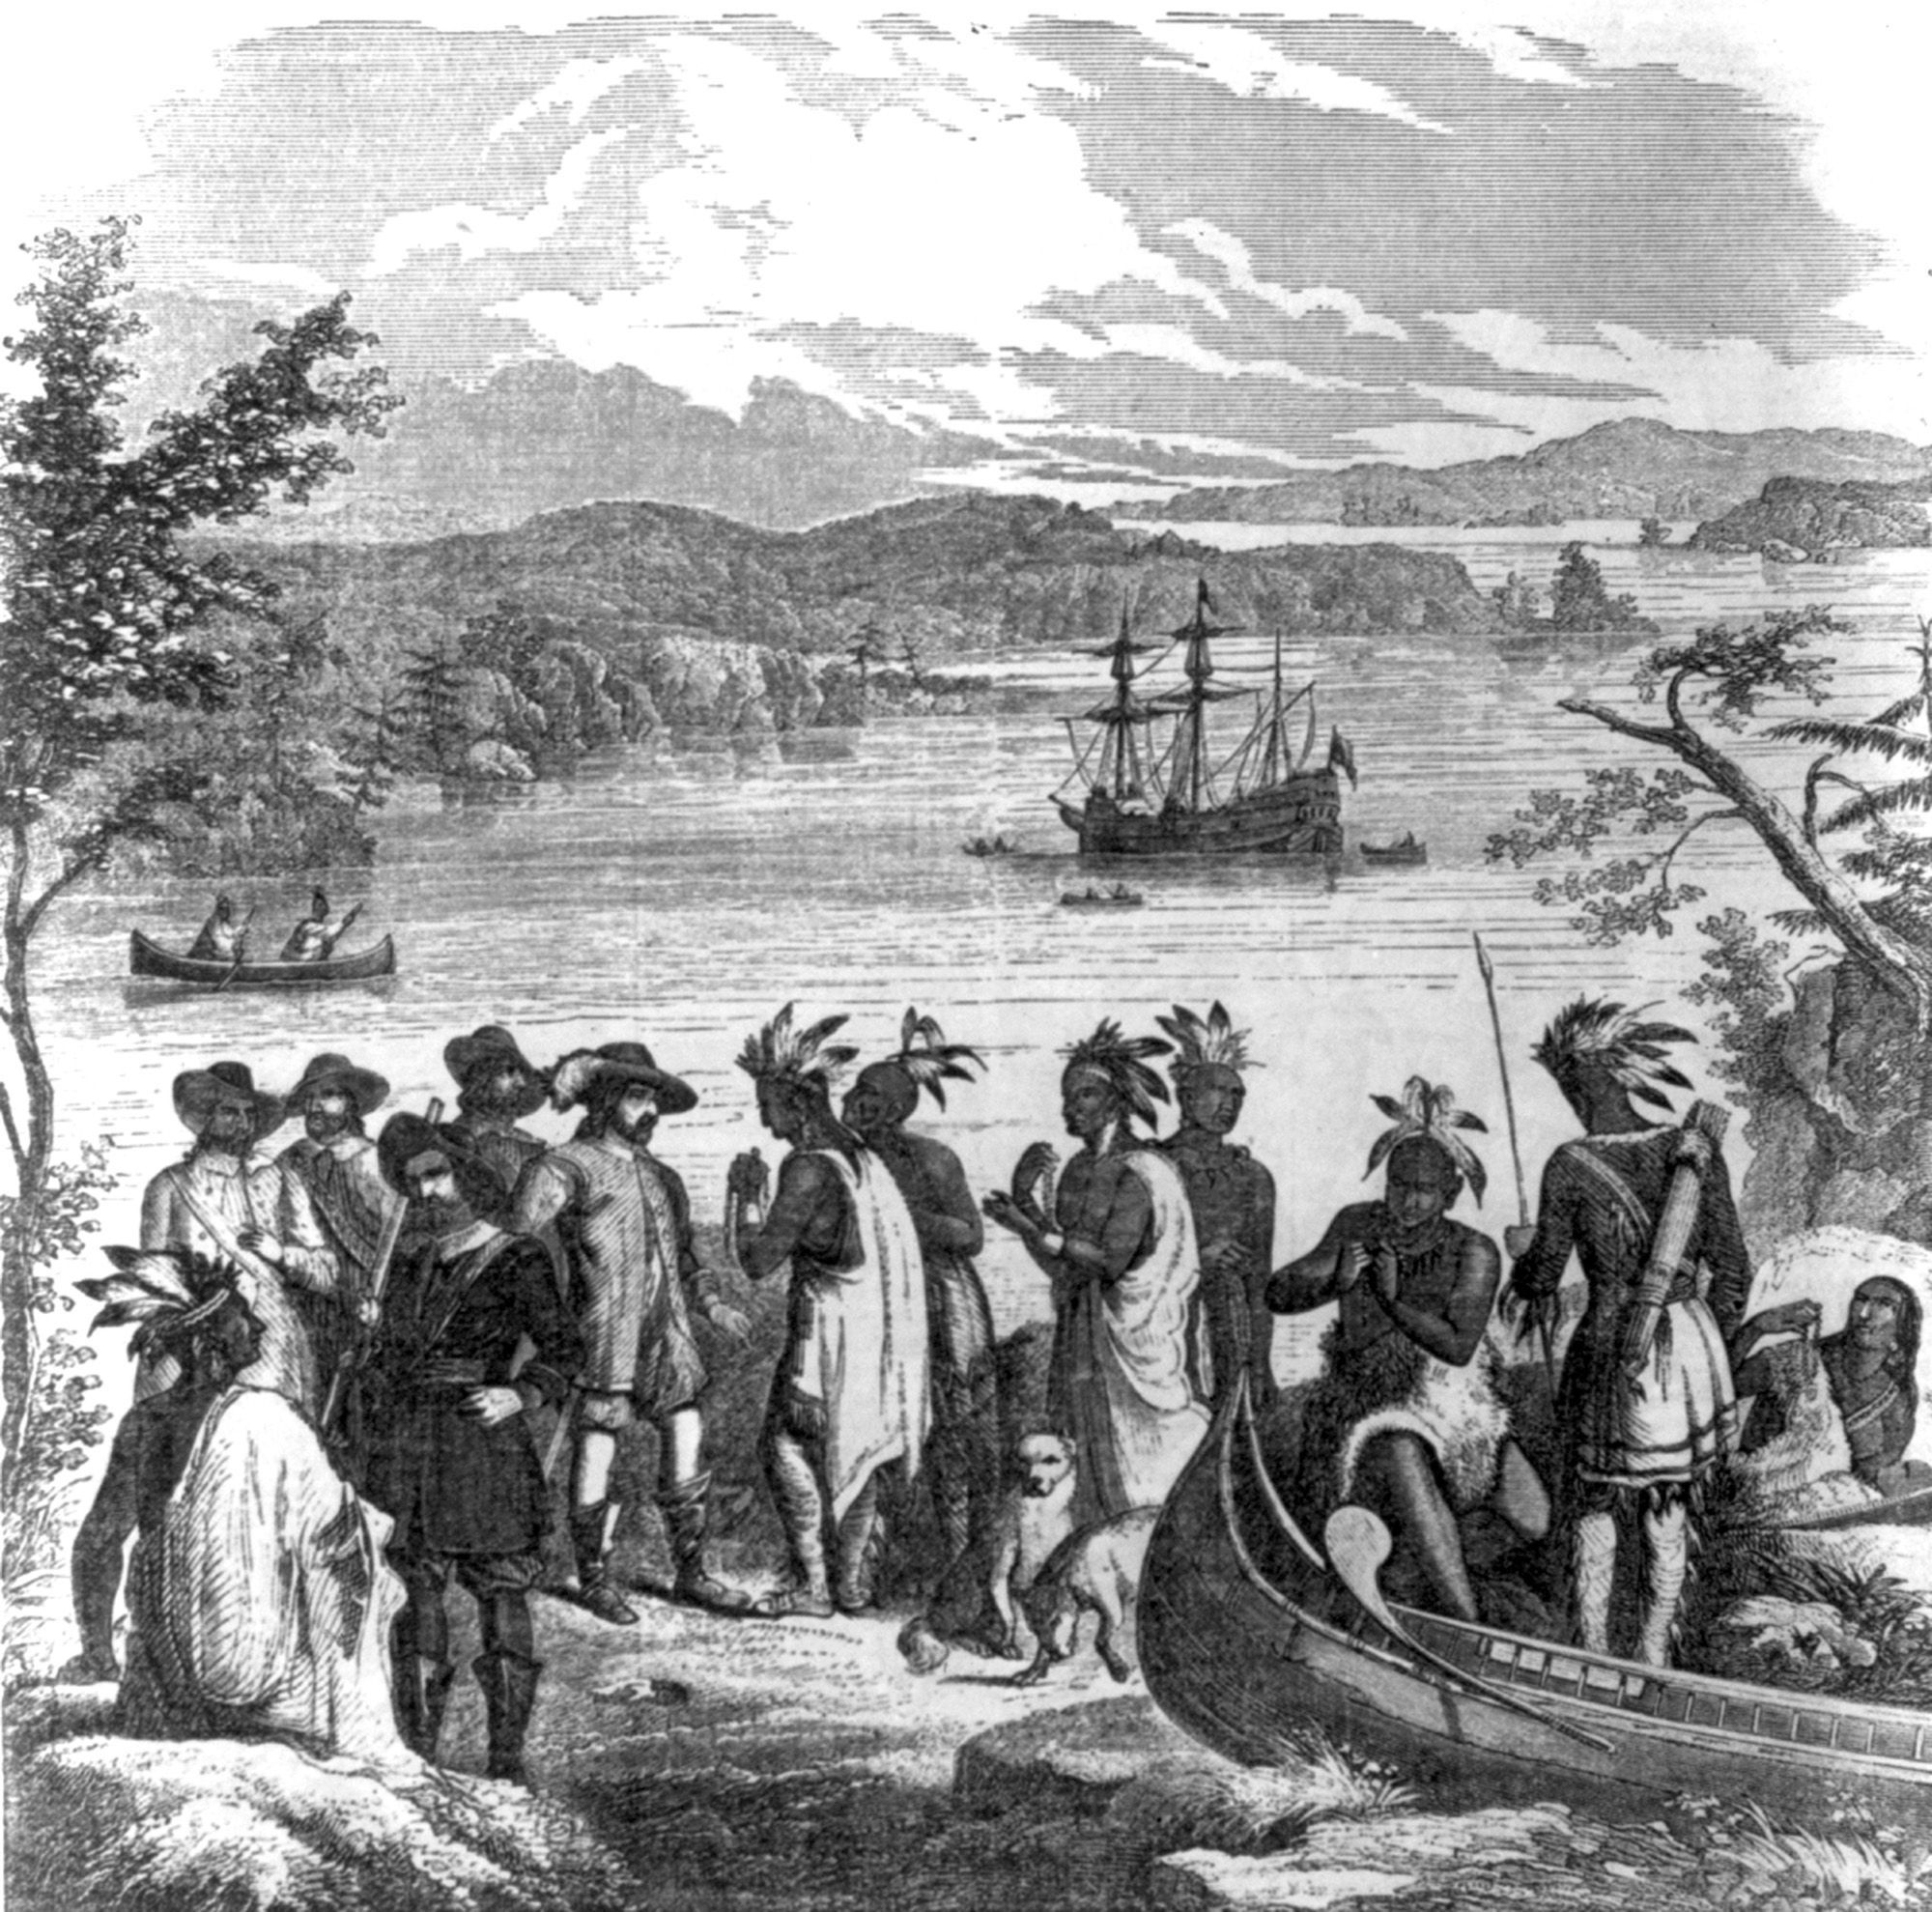 The New England Colonies and the Native Americans